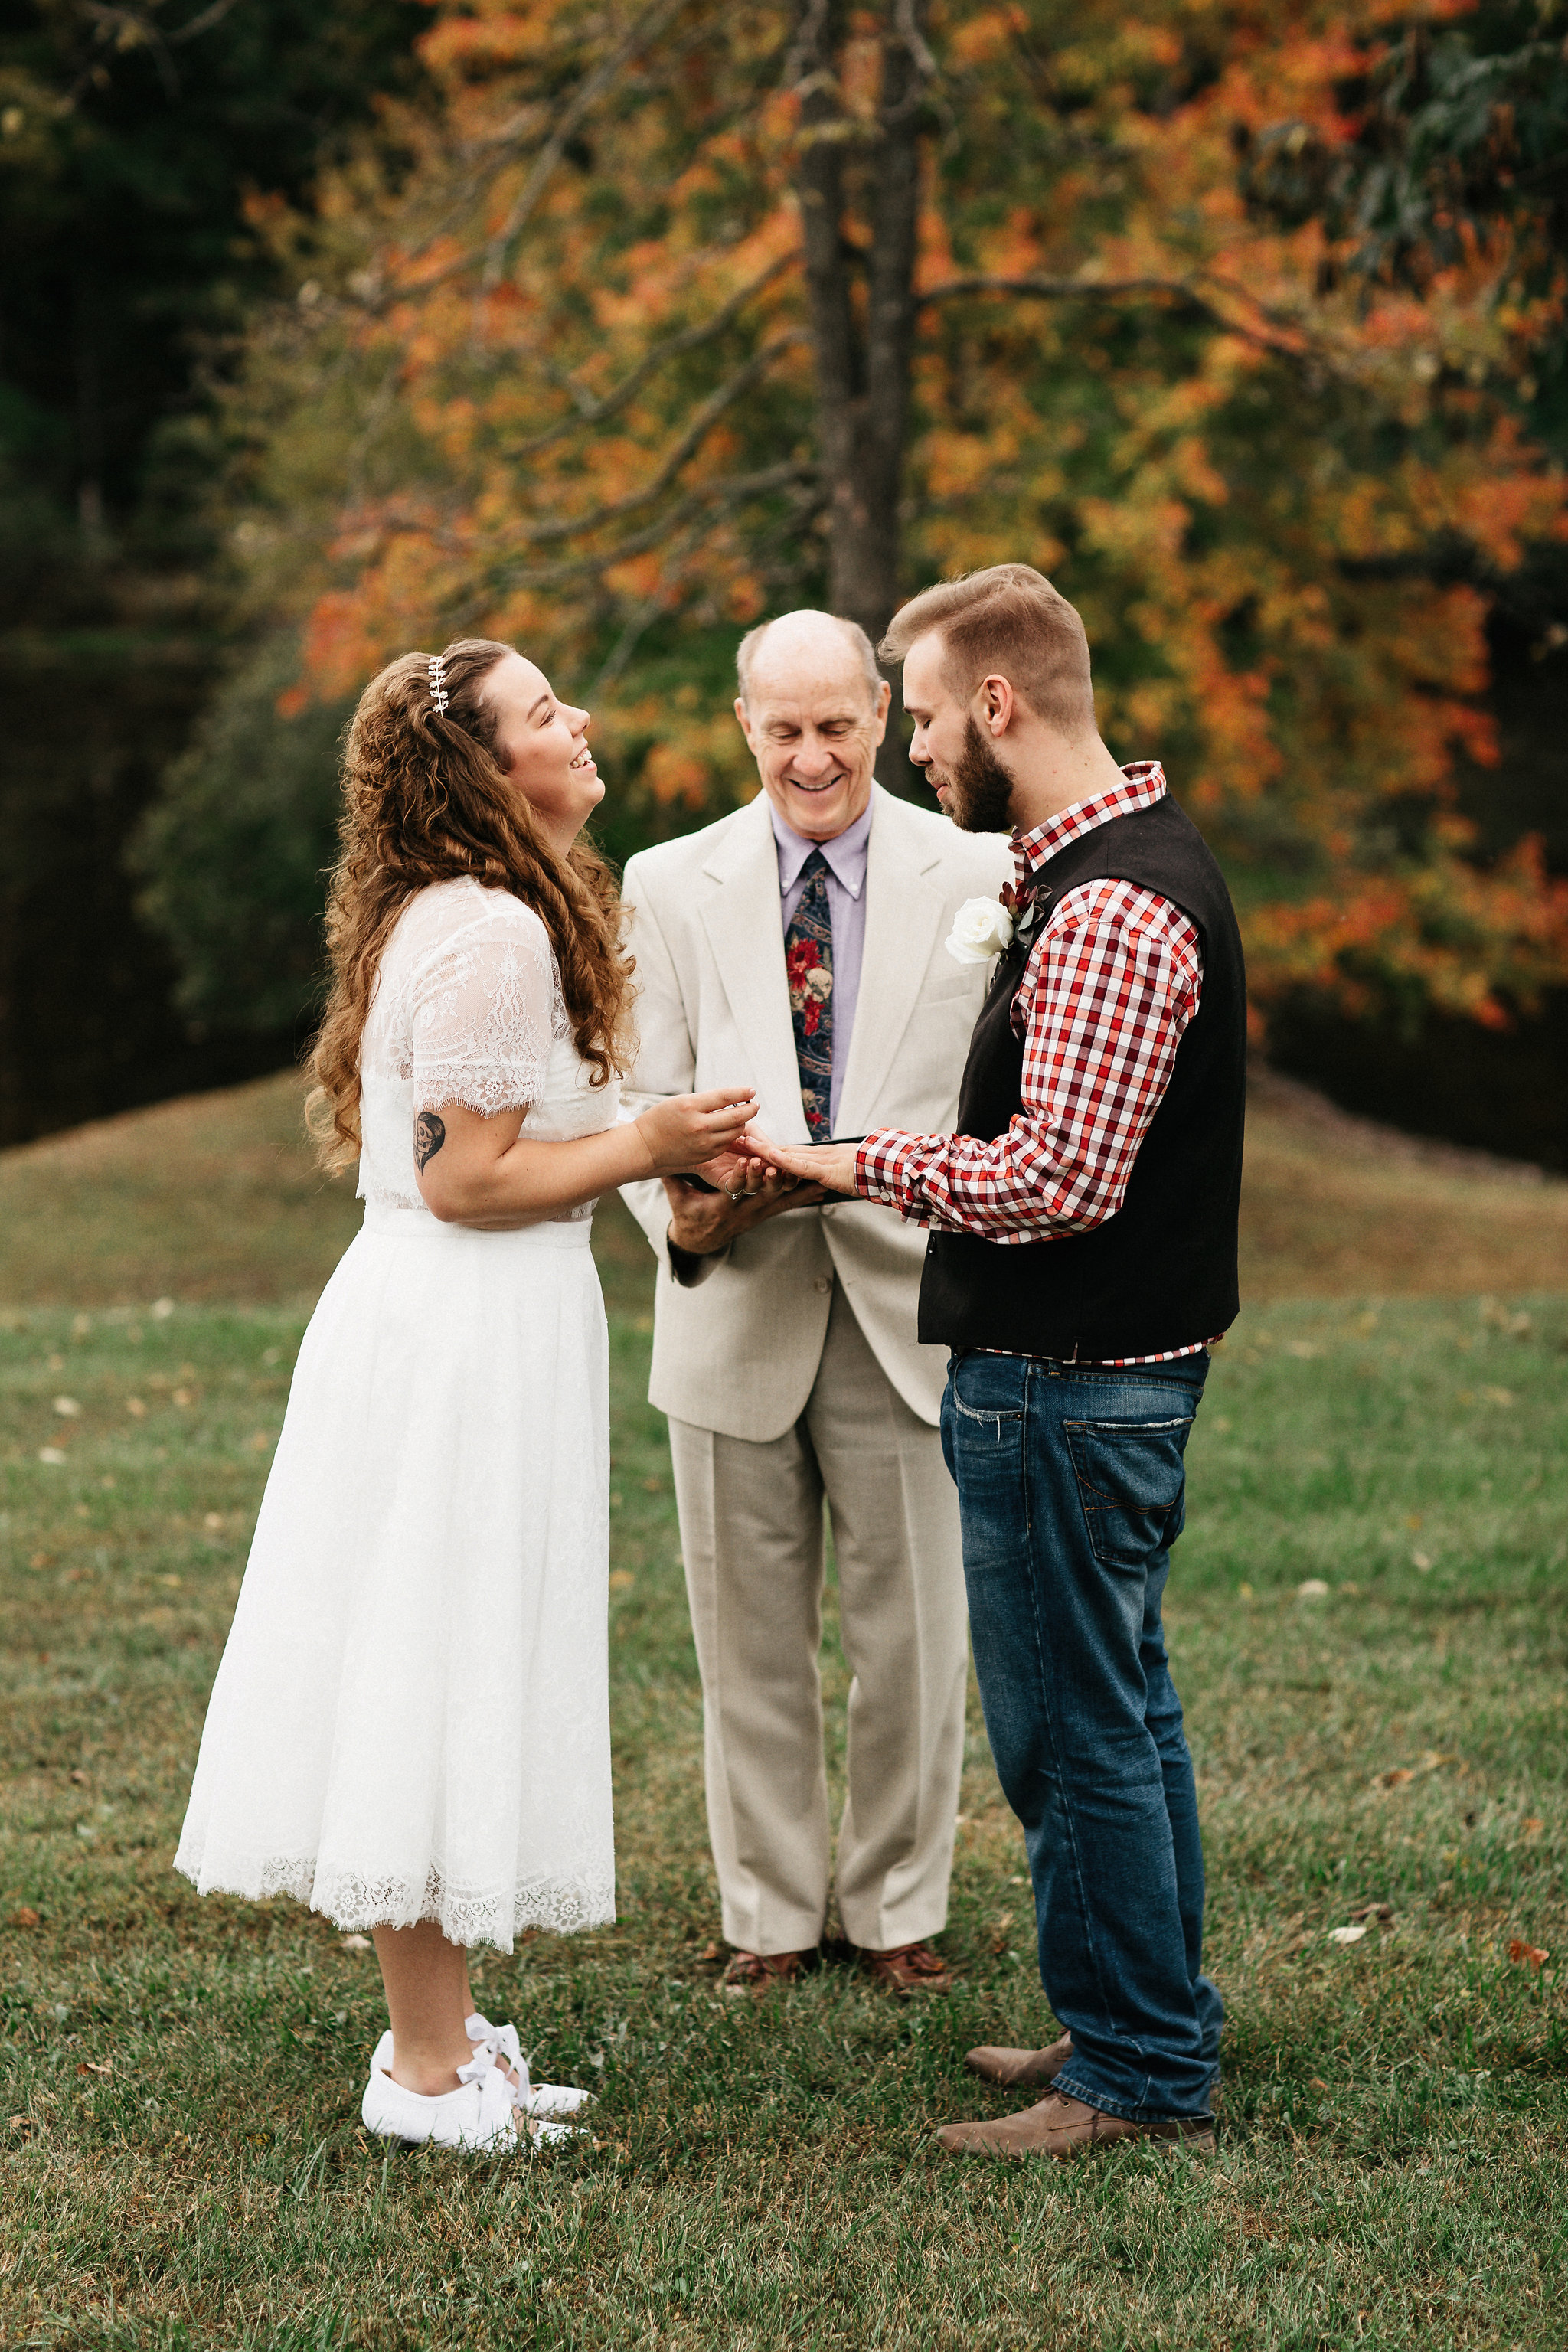 Caitlin&CodyMarried2017-11-03at19.19.37PM61.jpg